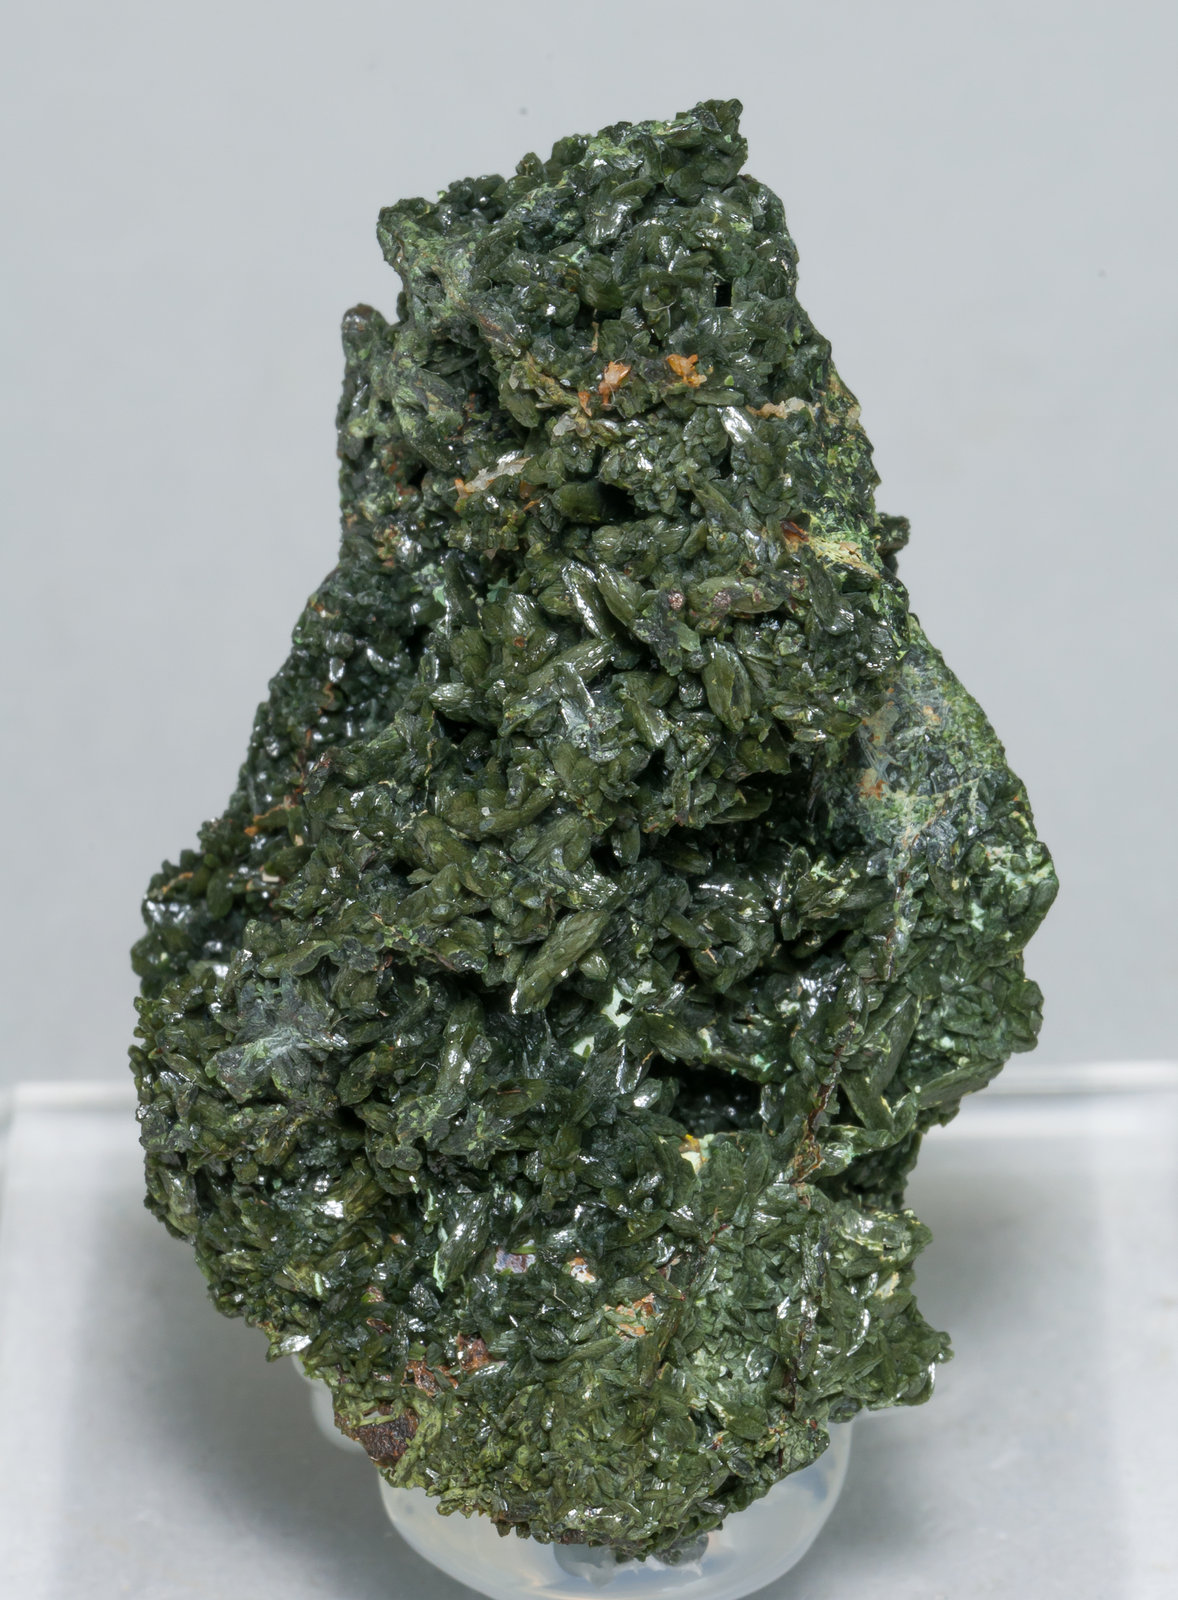 specimens/s_imagesAA1/Olivenite-EP99AA1f.jpg